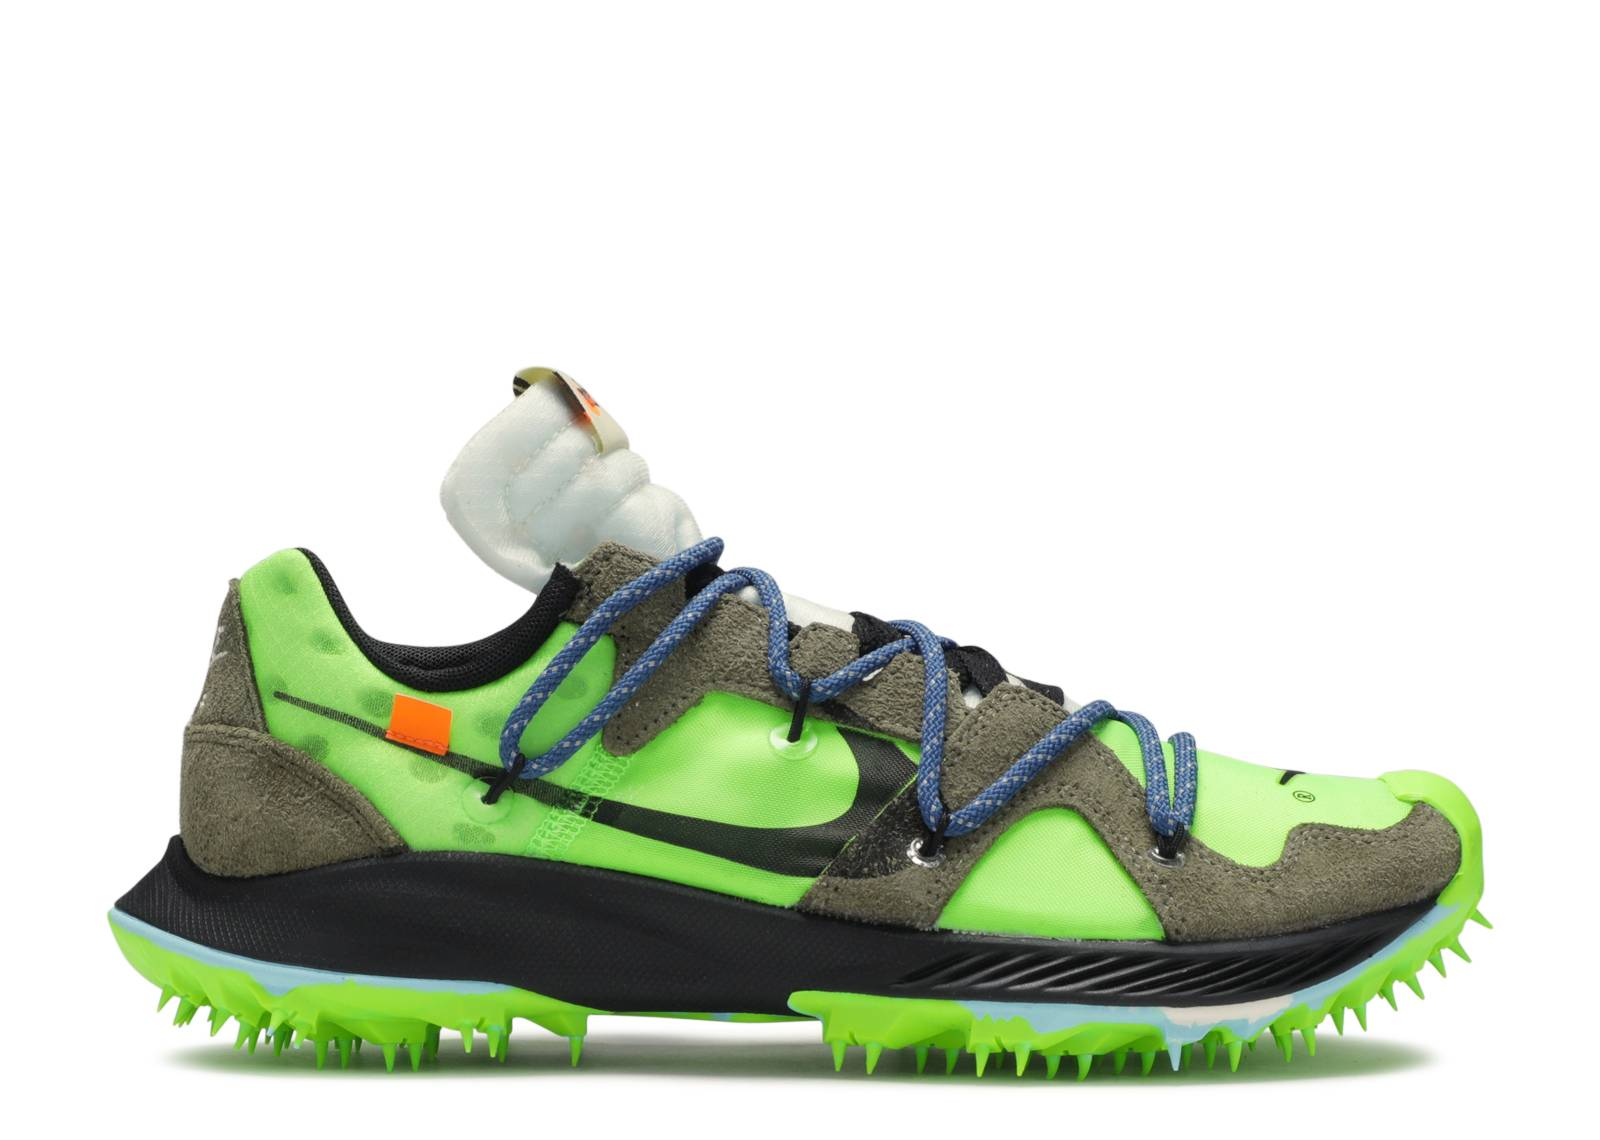 wholesale online detailed look new high quality Wmns Air Zoom Terra Kiger 5/ow